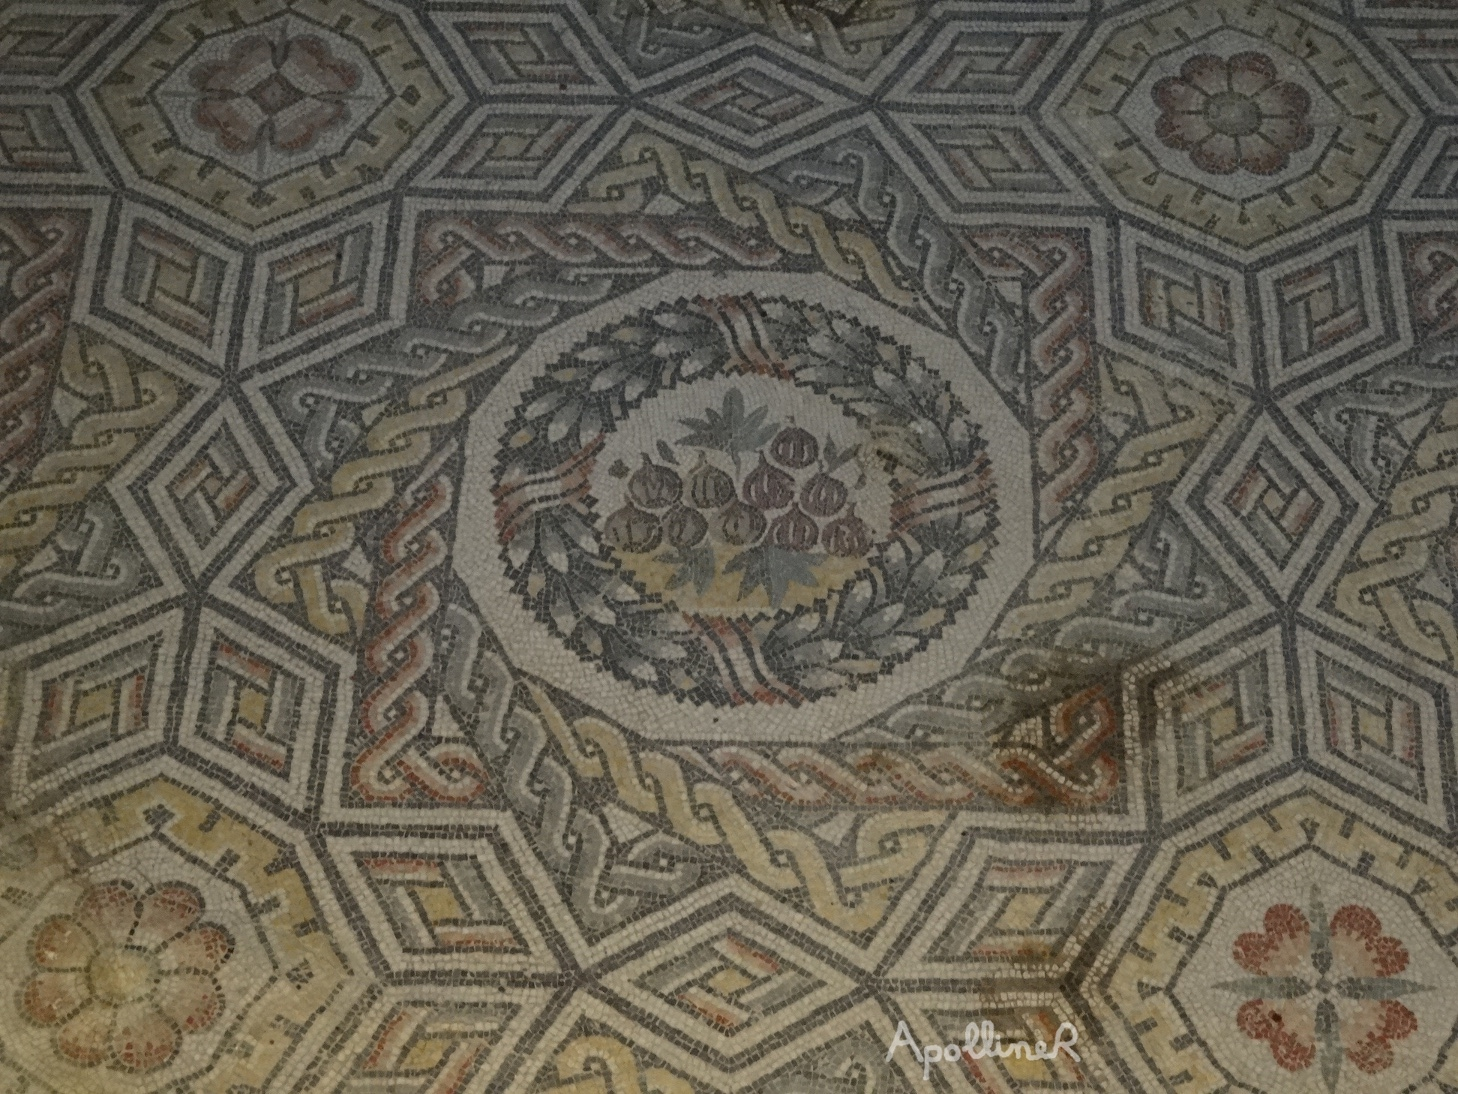 Roman mosaic with geometrical patterns and a medallion featuring figs. Villa Romana Del Casale in Sicily